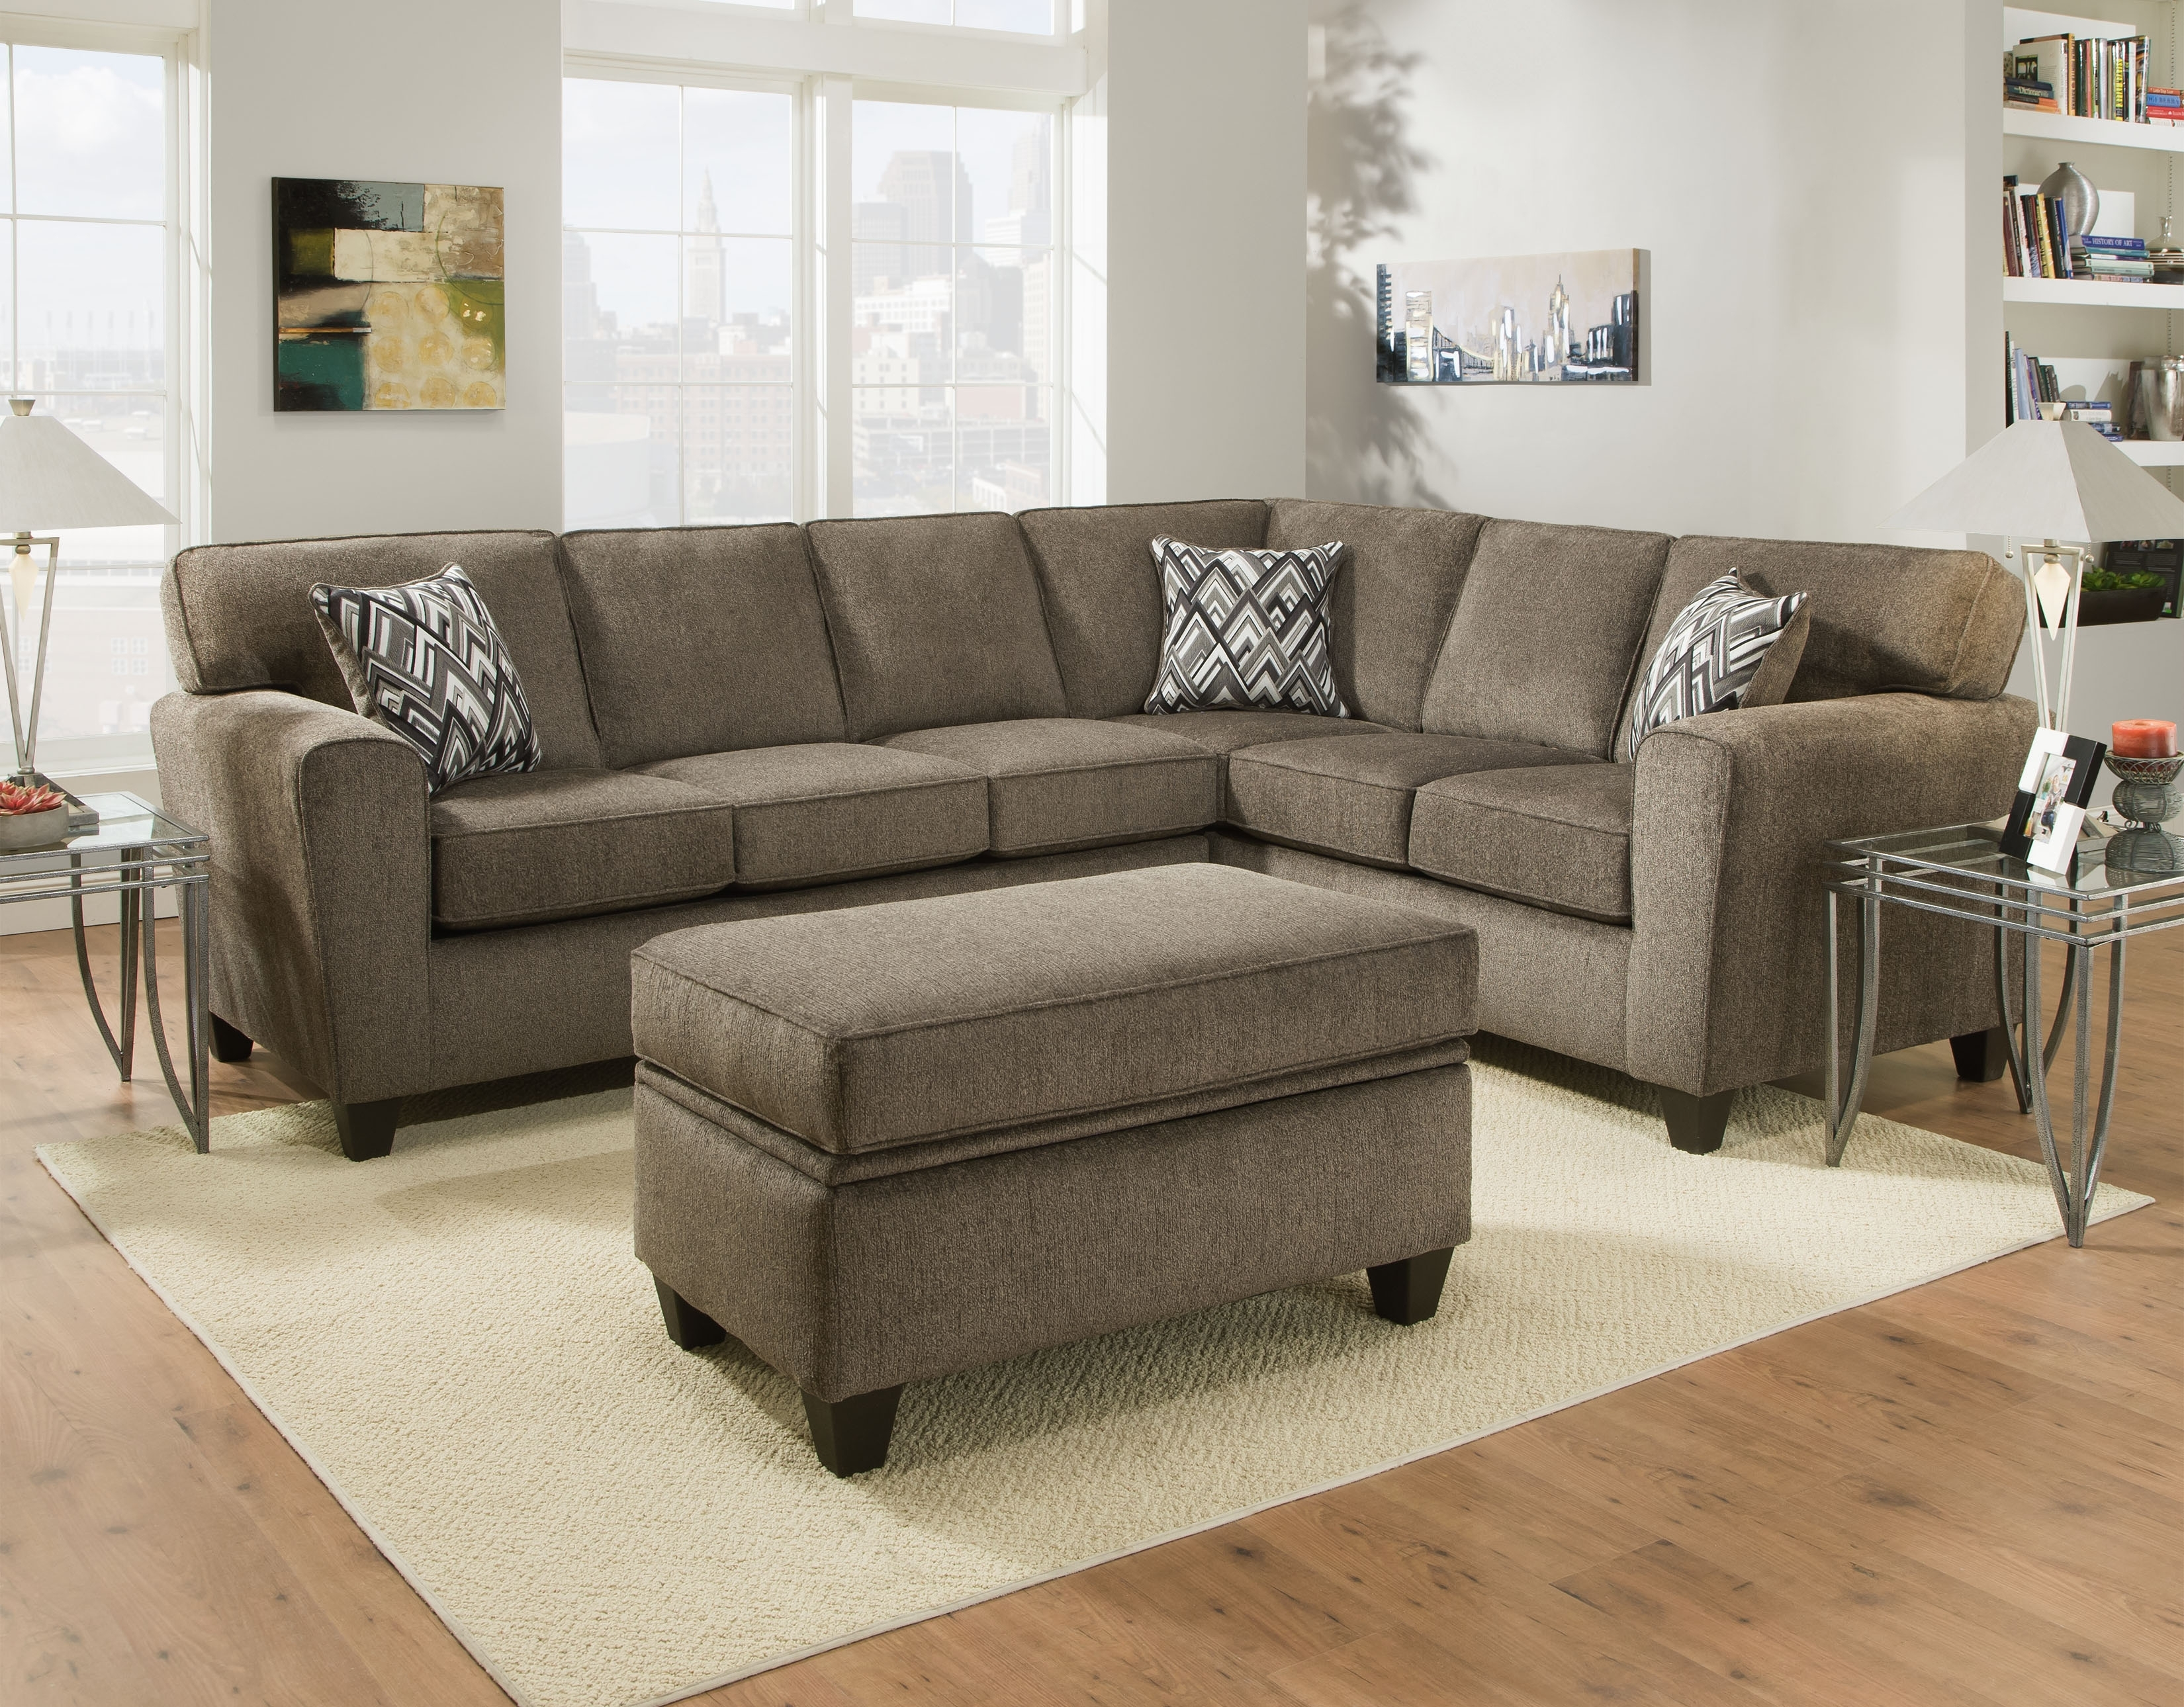 Living Room – Crazy Joe's Best Deal Furniture For Janesville Wi Sectional Sofas (View 2 of 10)